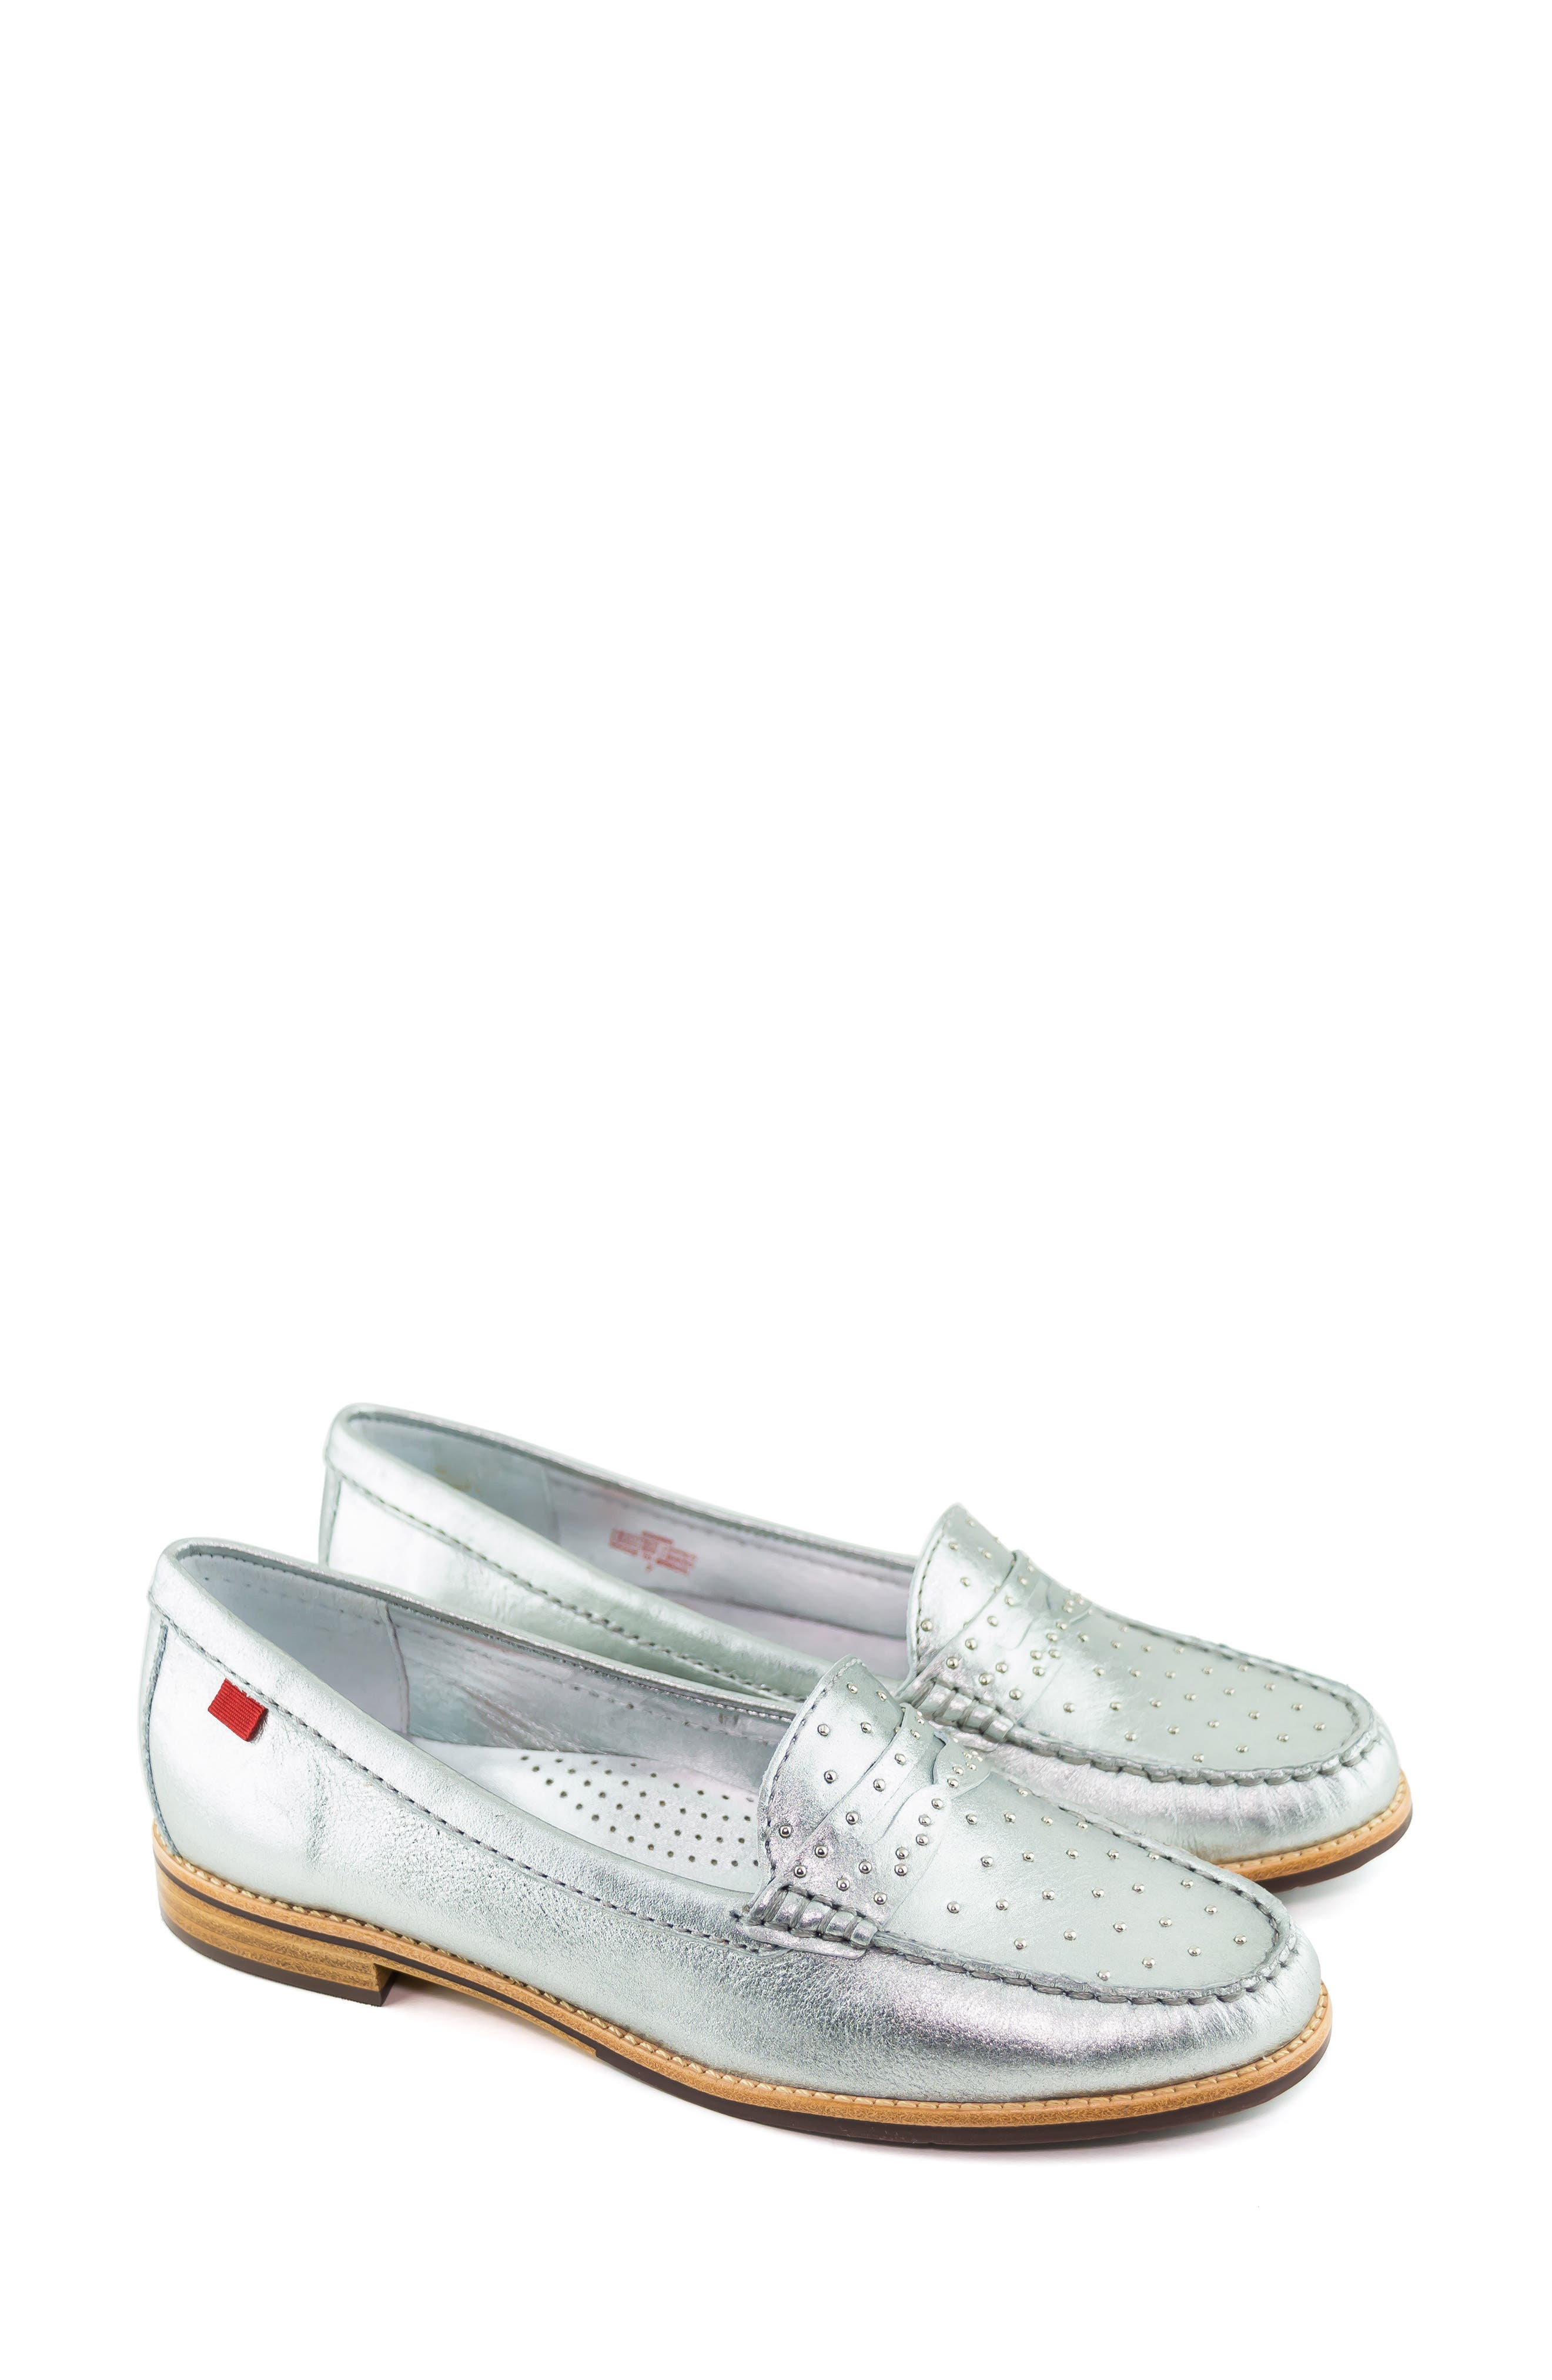 MARC JOSEPH NEW YORK, East Village III Studded Loafer, Alternate thumbnail 7, color, SILVER LEATHER